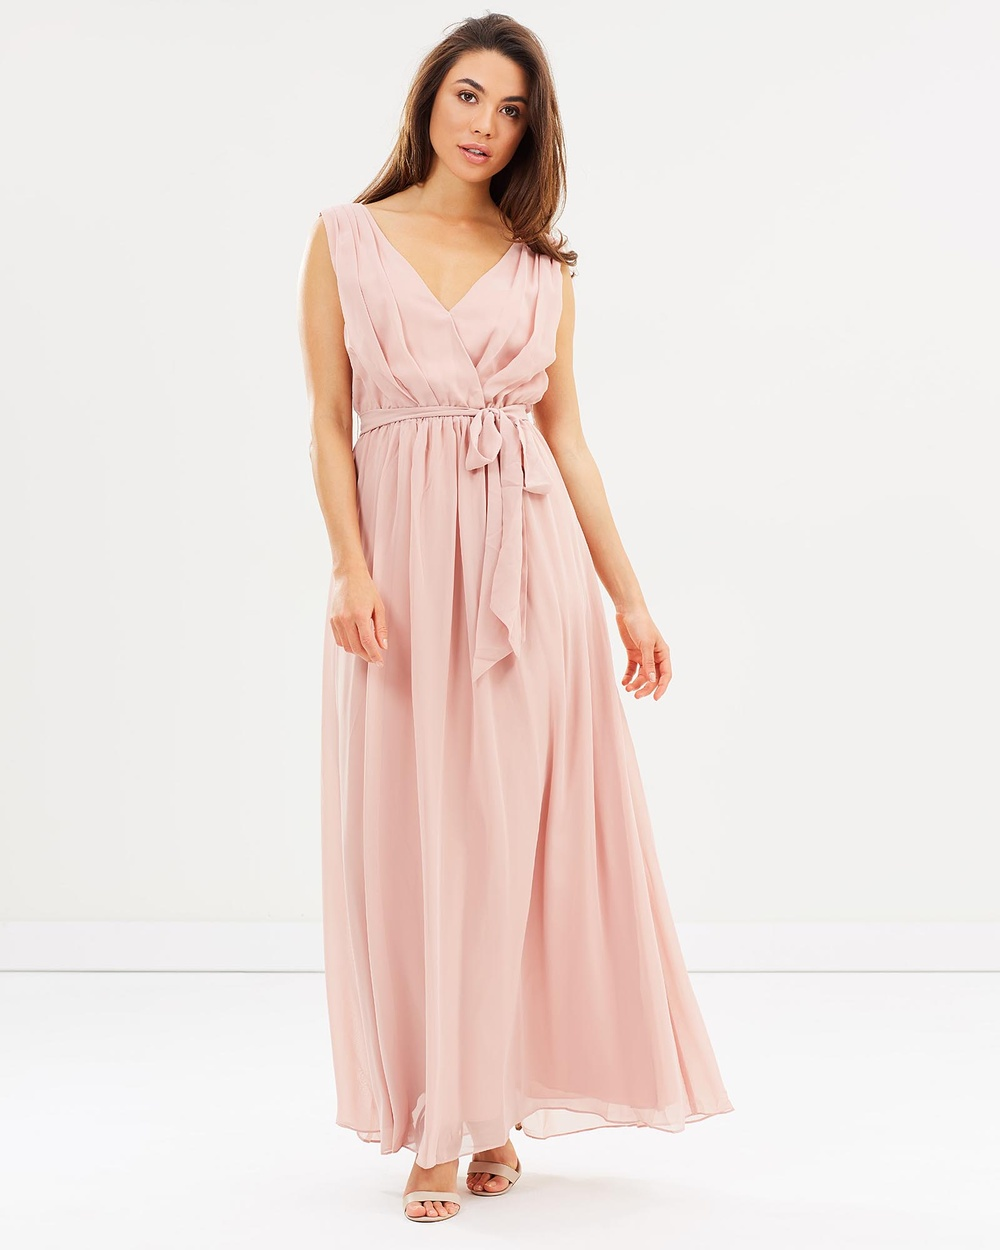 Esther Tulip Maxi Dress Bridesmaid Dresses Dark Blush  Tulip Maxi Dress